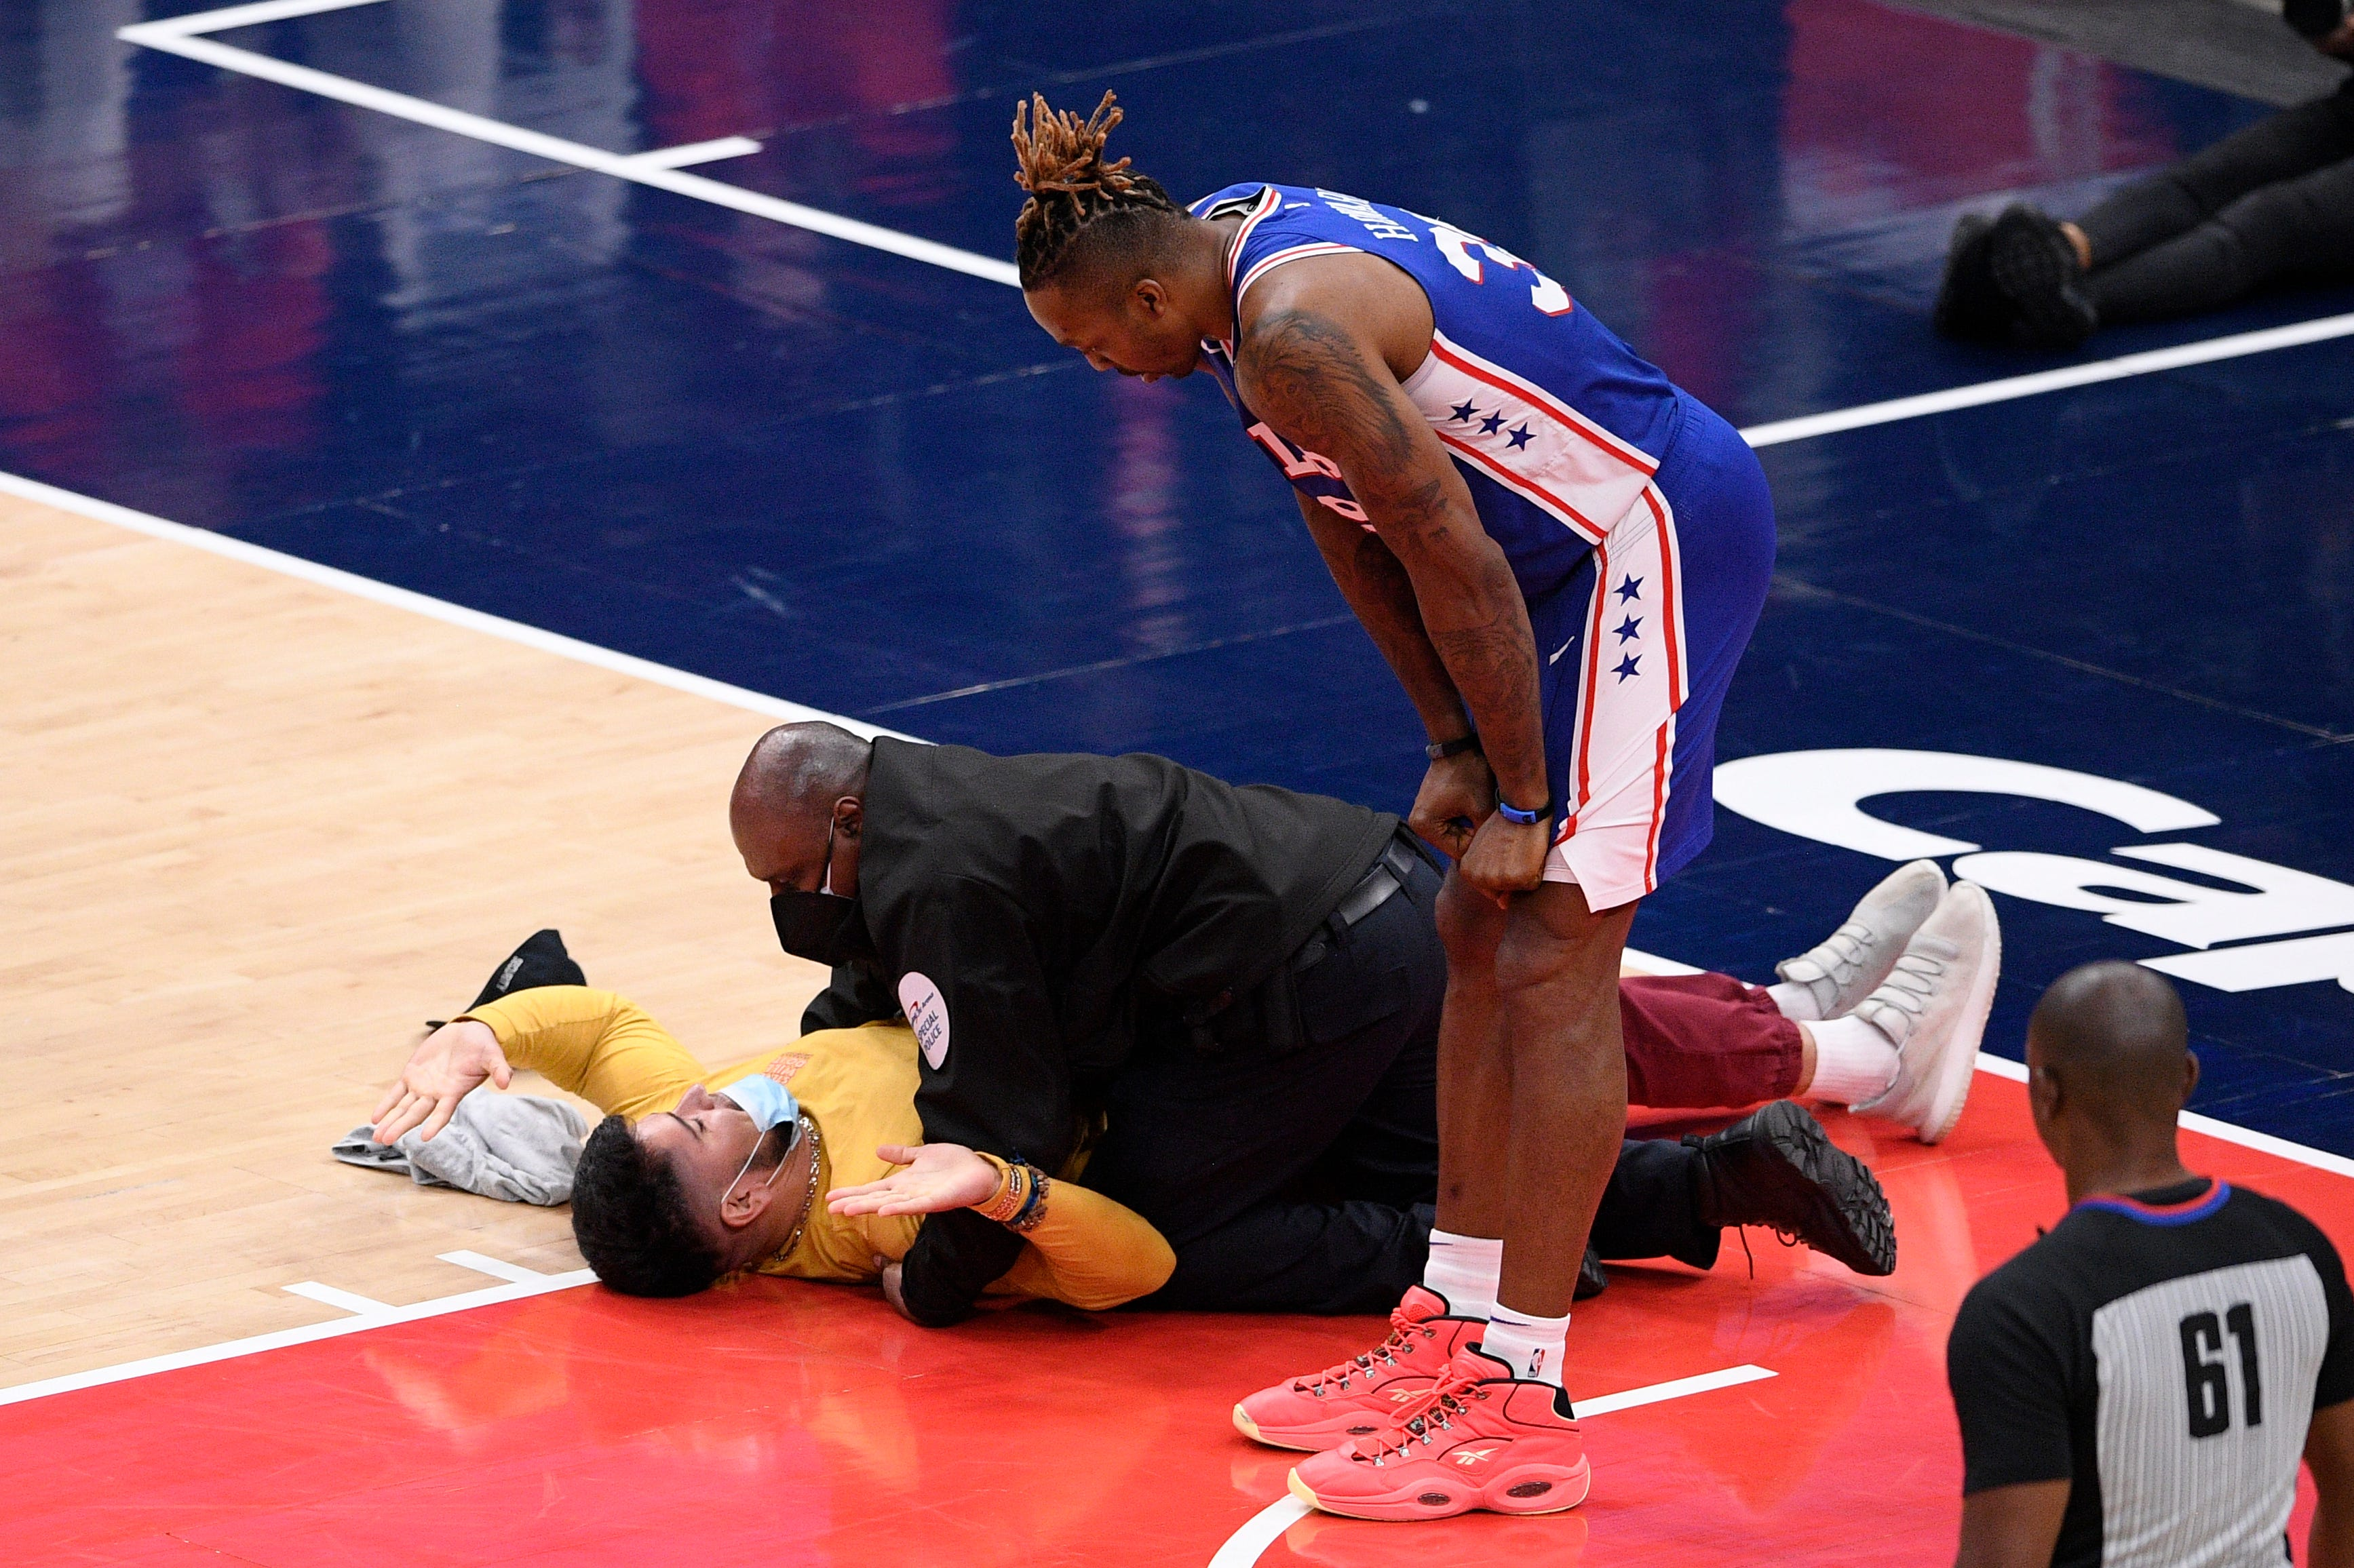 Opinion: Abuse goes beyond NBA players and reflects larger failings in America today